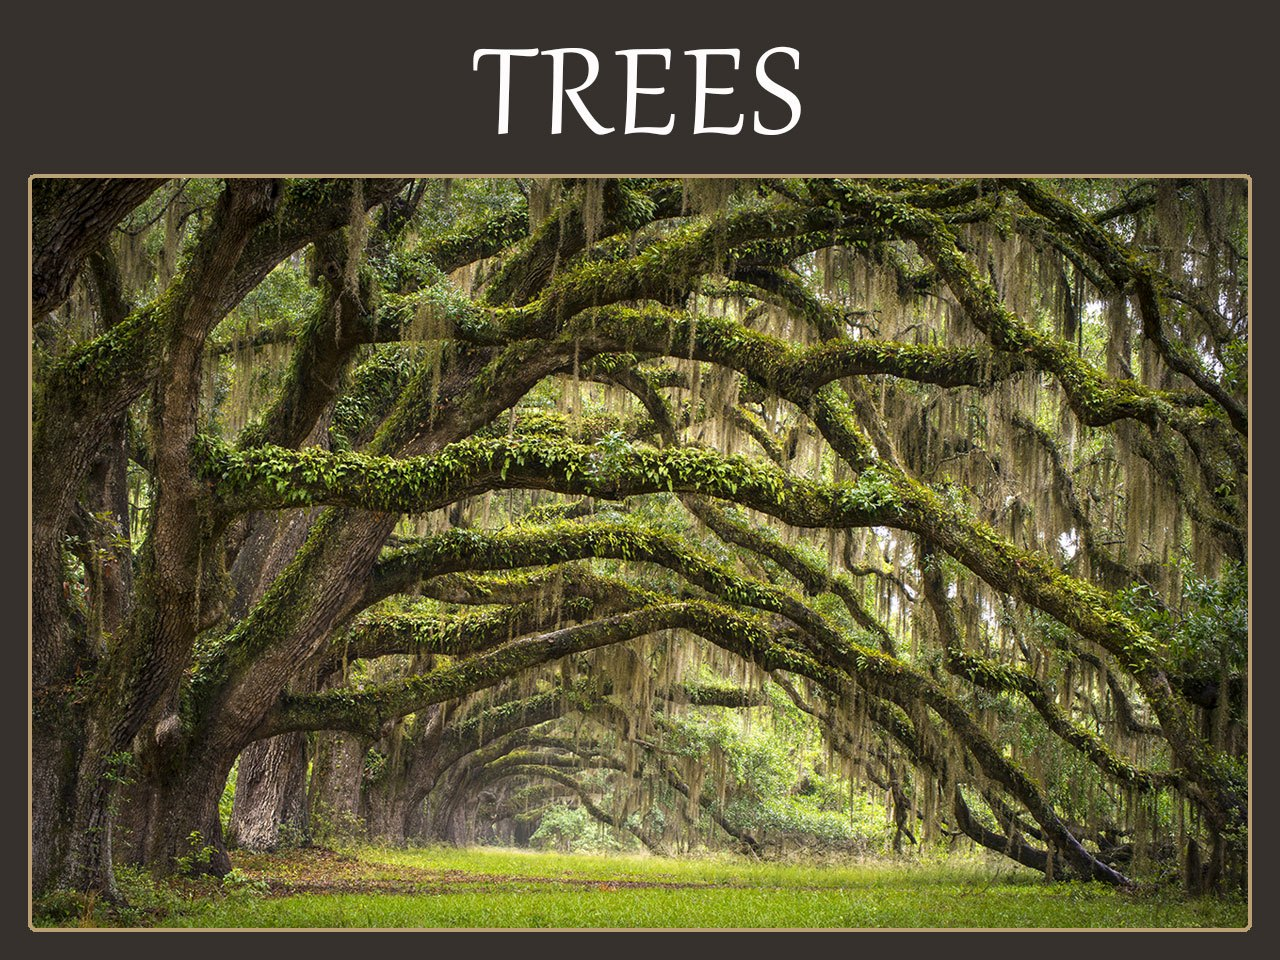 Tree symbolism meanings dogwood oak sequoia cherry What is the meaning of tree